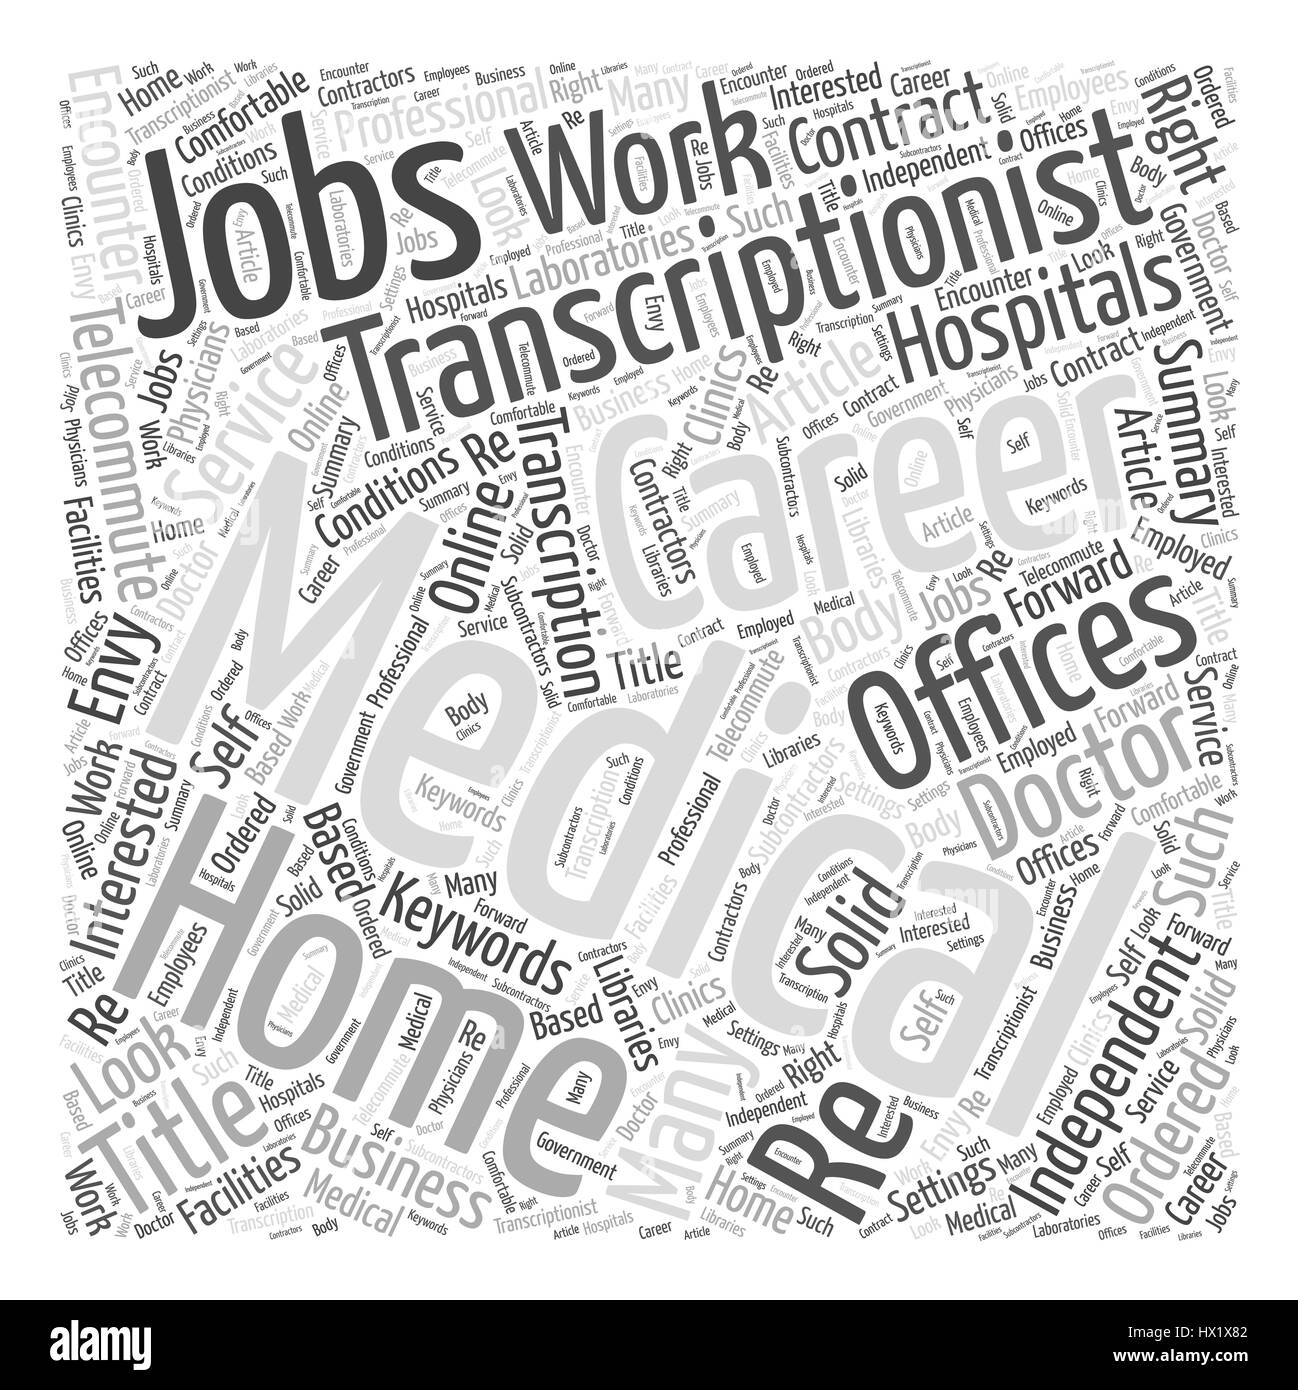 A Medical Transcriptionist Career Could Be Just What The Doctor Ordered Word Cloud Concept - Stock Vector